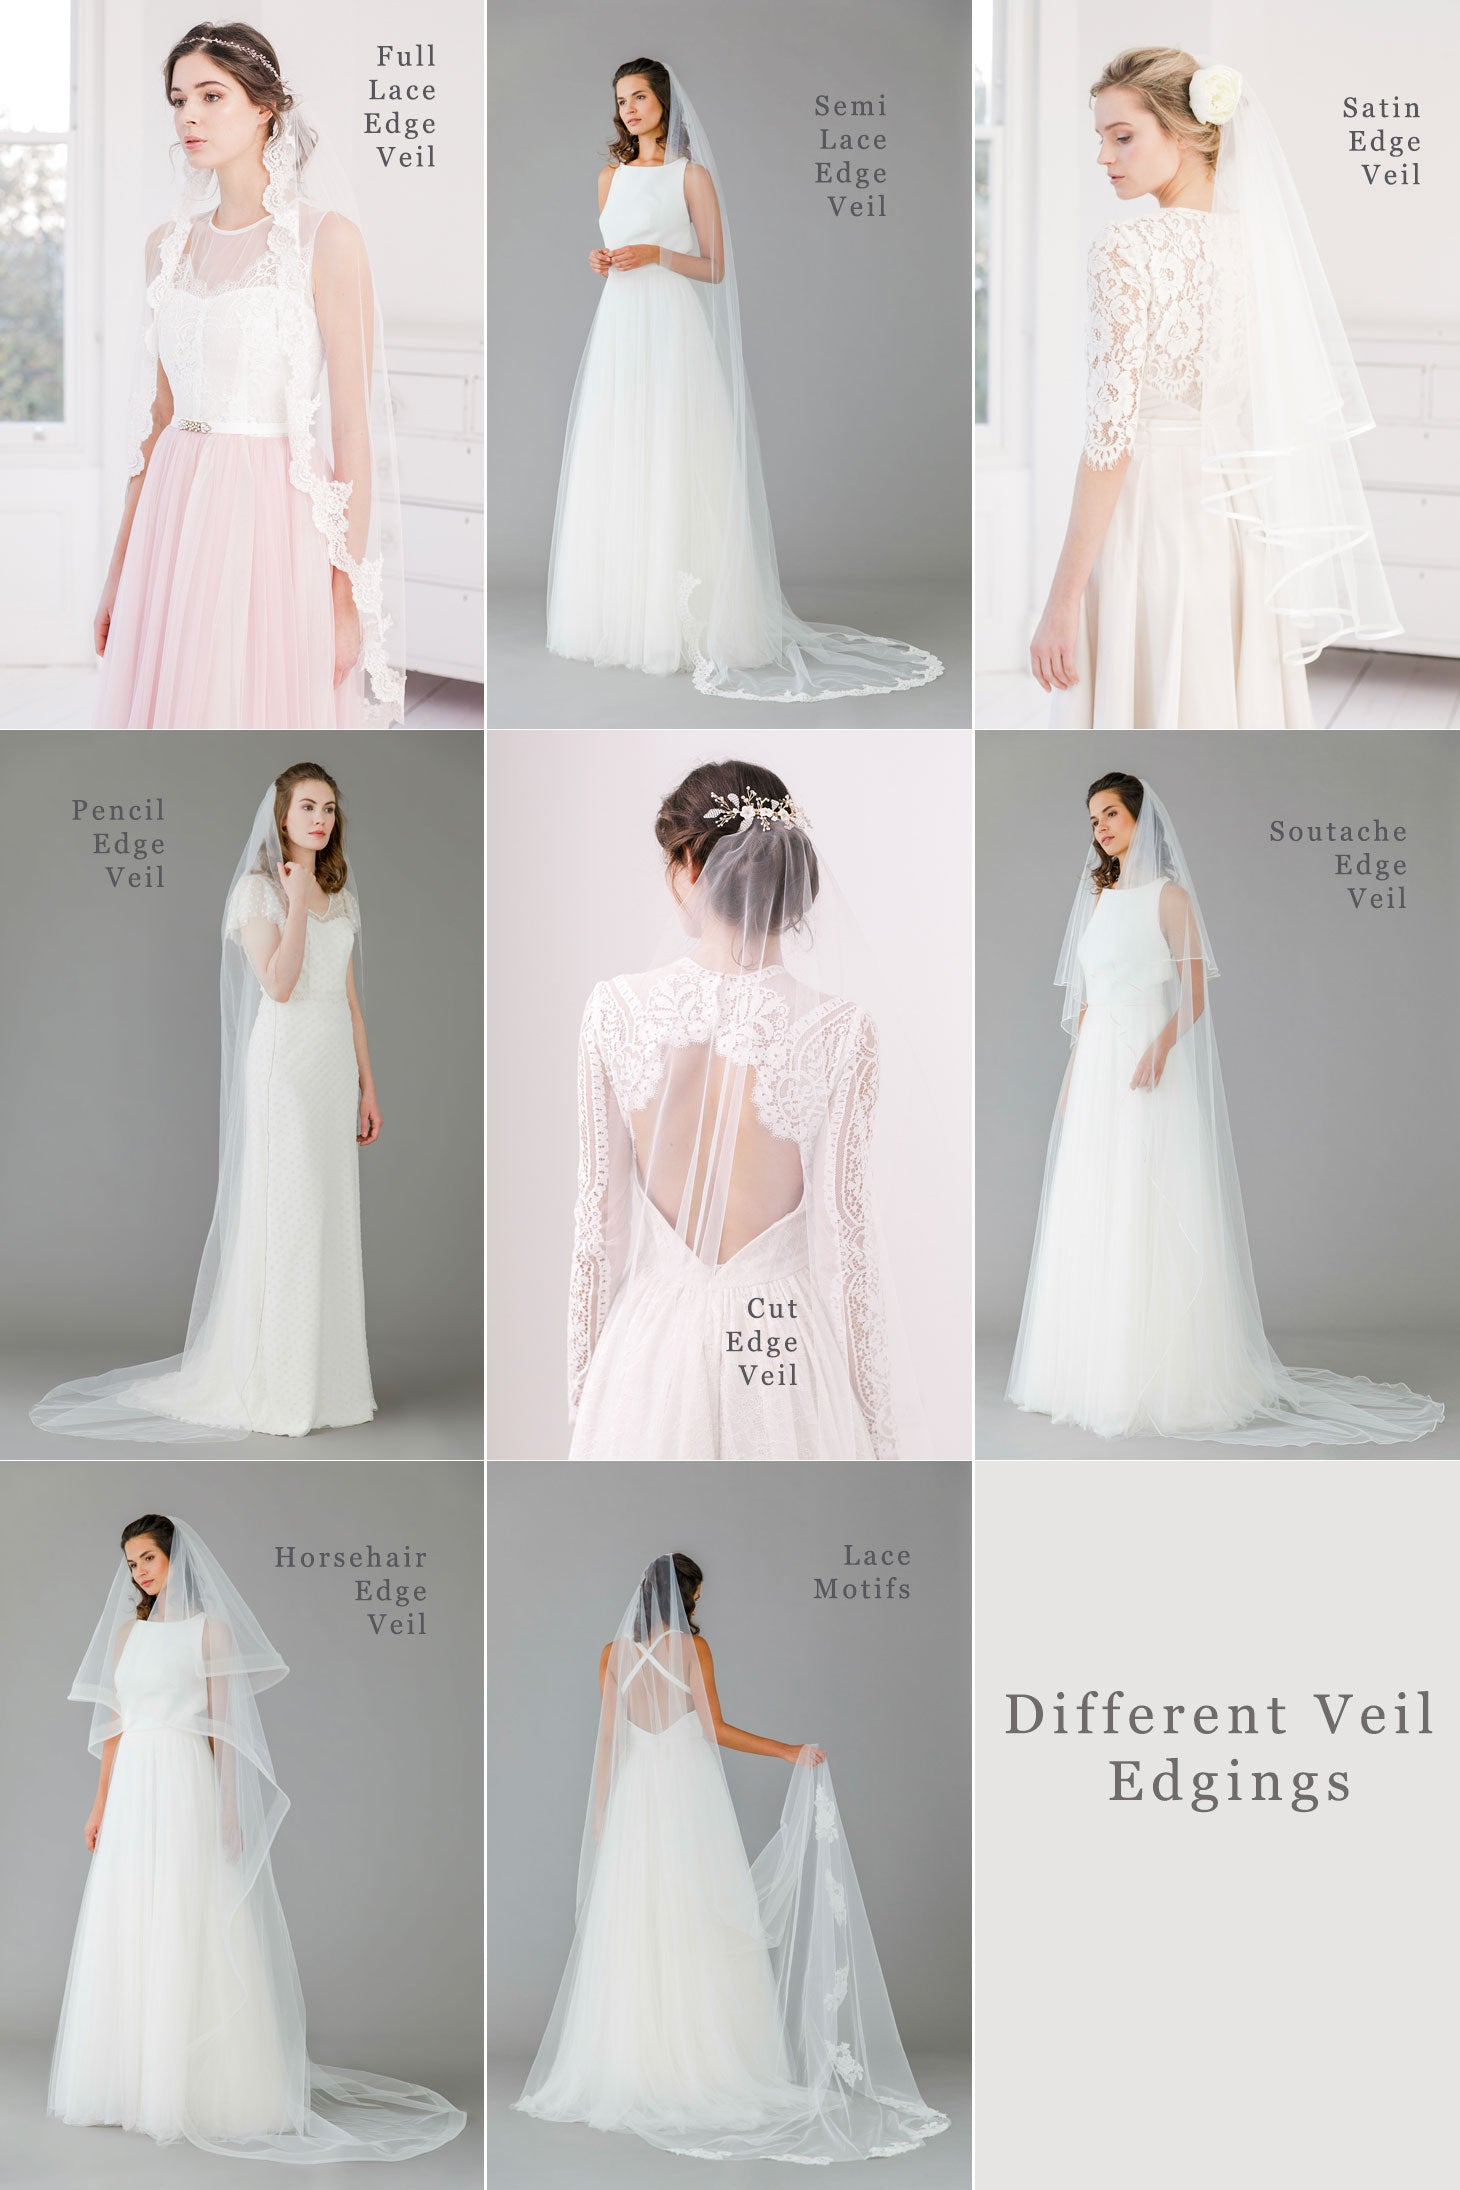 062b51faab0d3 what are the different types of veil edgings available